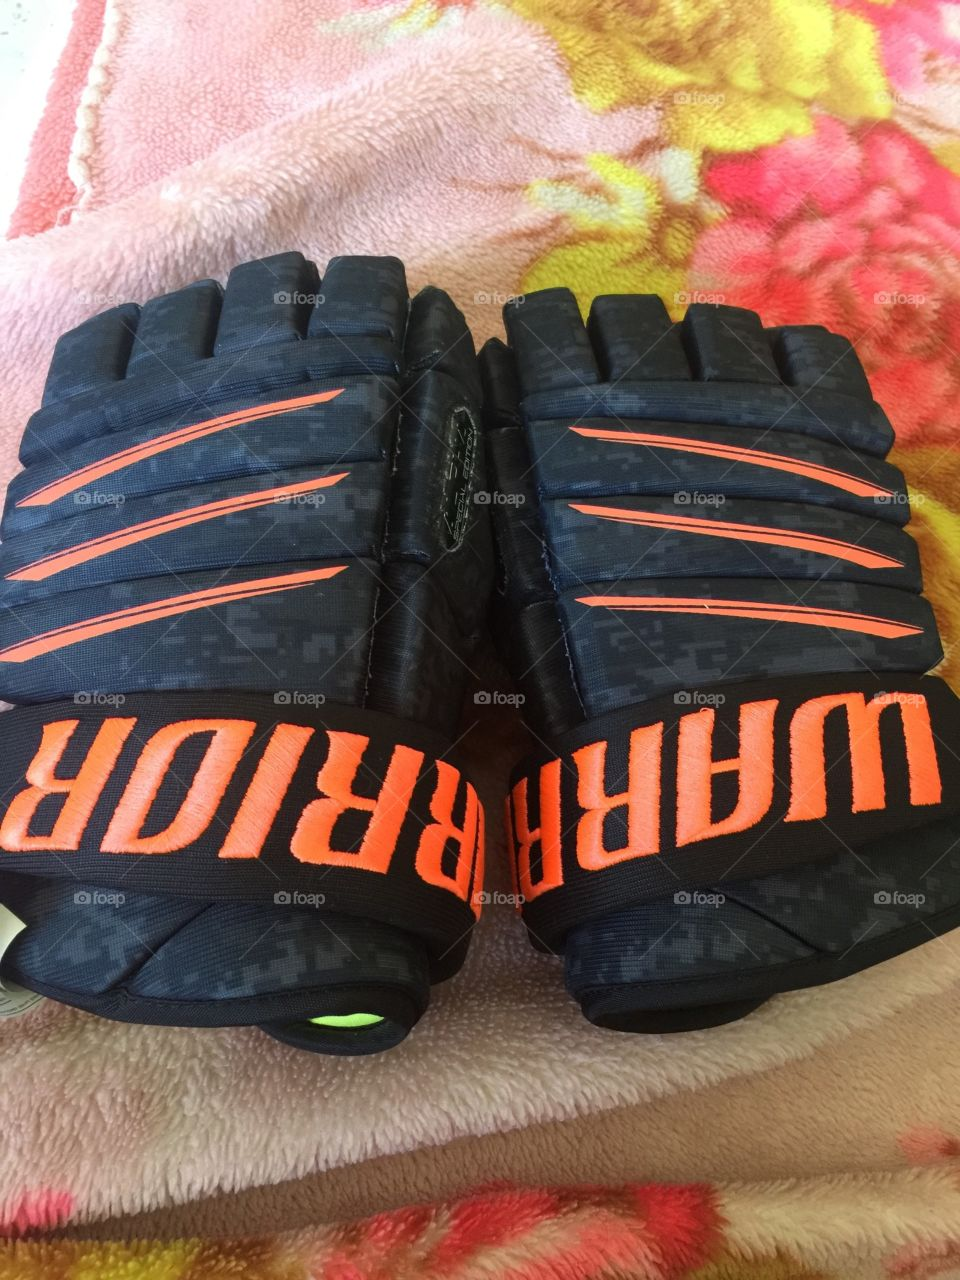 Warrior special edition hockey gloves